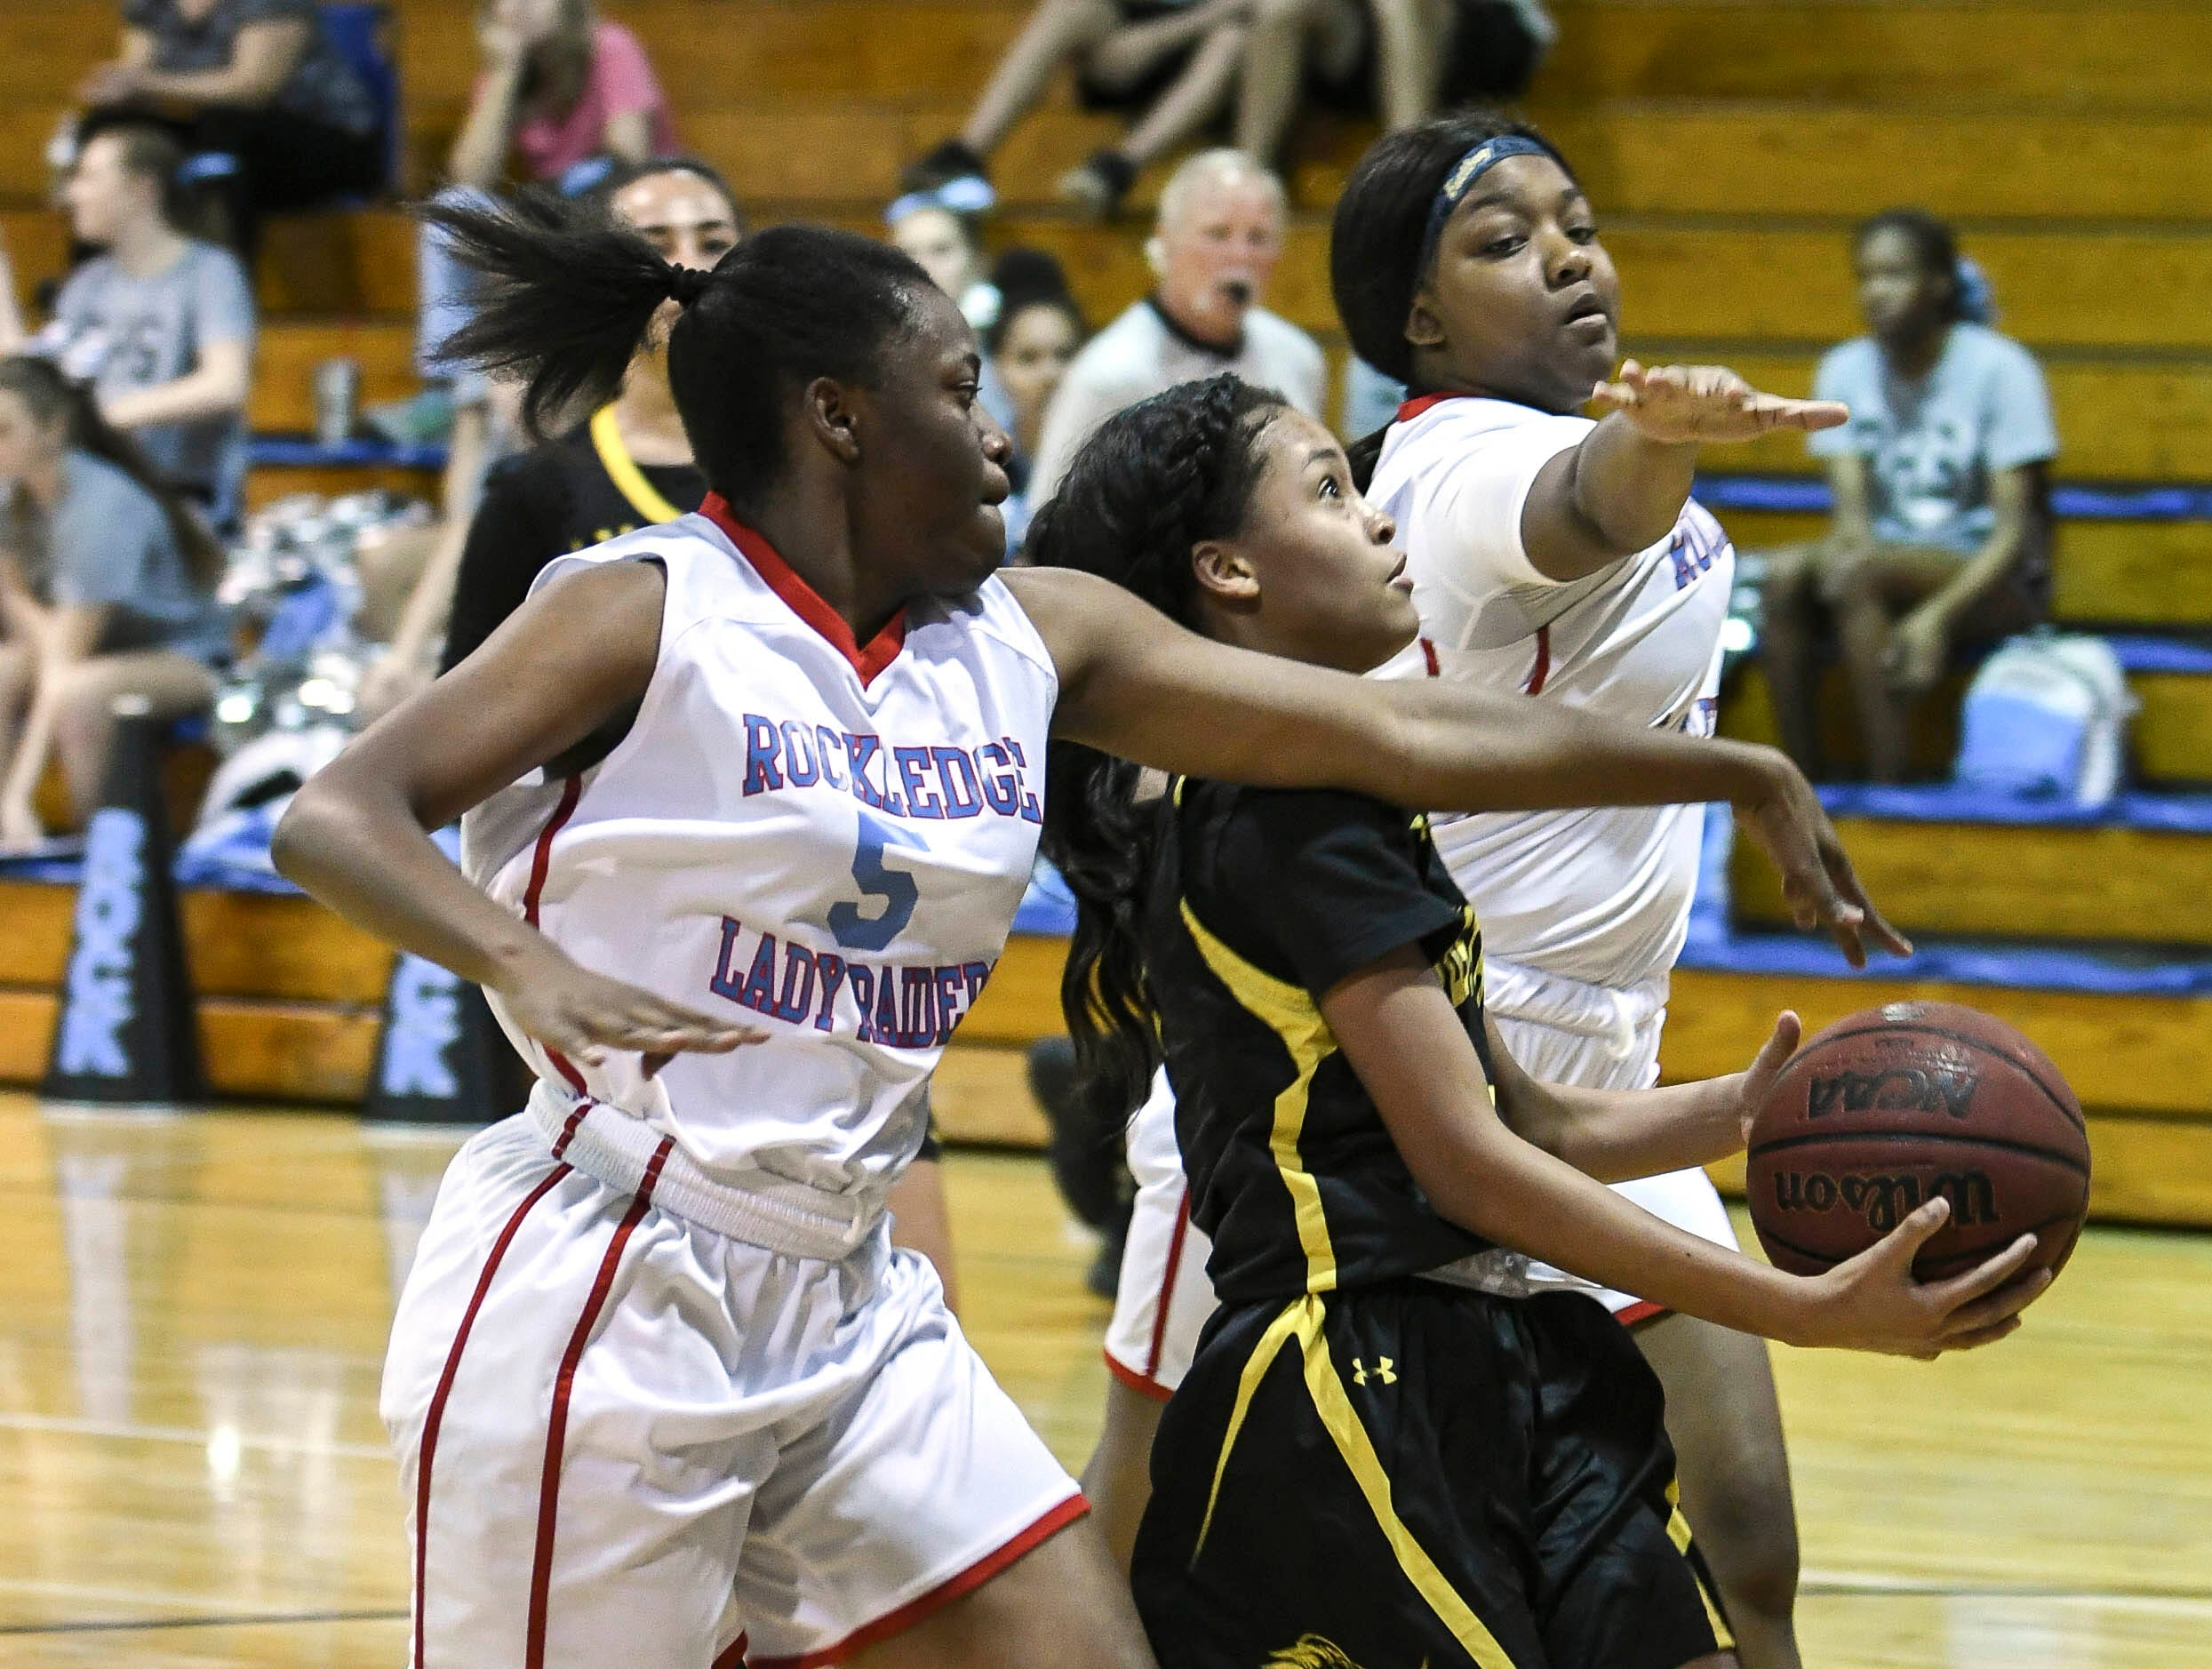 Crystal Brown and Zarea Baker of Rockledge try to prevent Shakira Fernandez of Merritt Island from scoring during Thursday's District 14-6A basketball tournament at Rockledge High School.